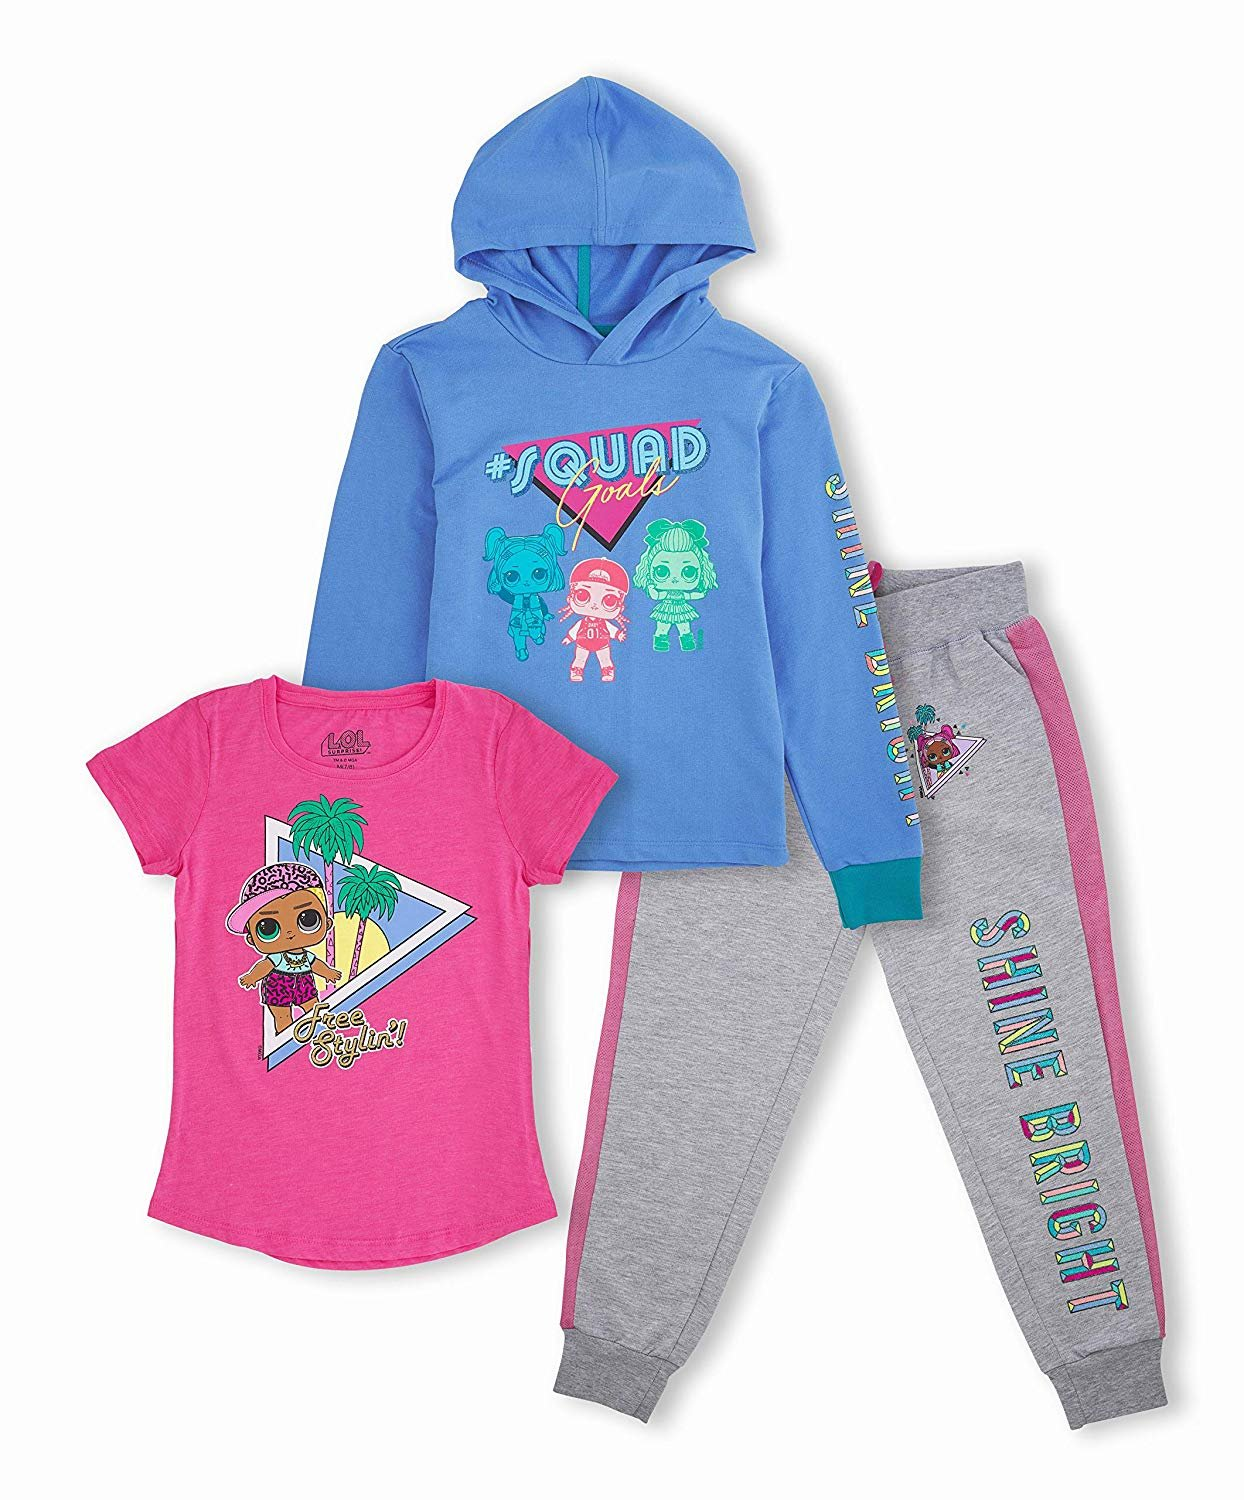 Disney Toddler /& Little Girls/' Minnie Mouse Hoodie and Leggings Outfit Set 2T-6x